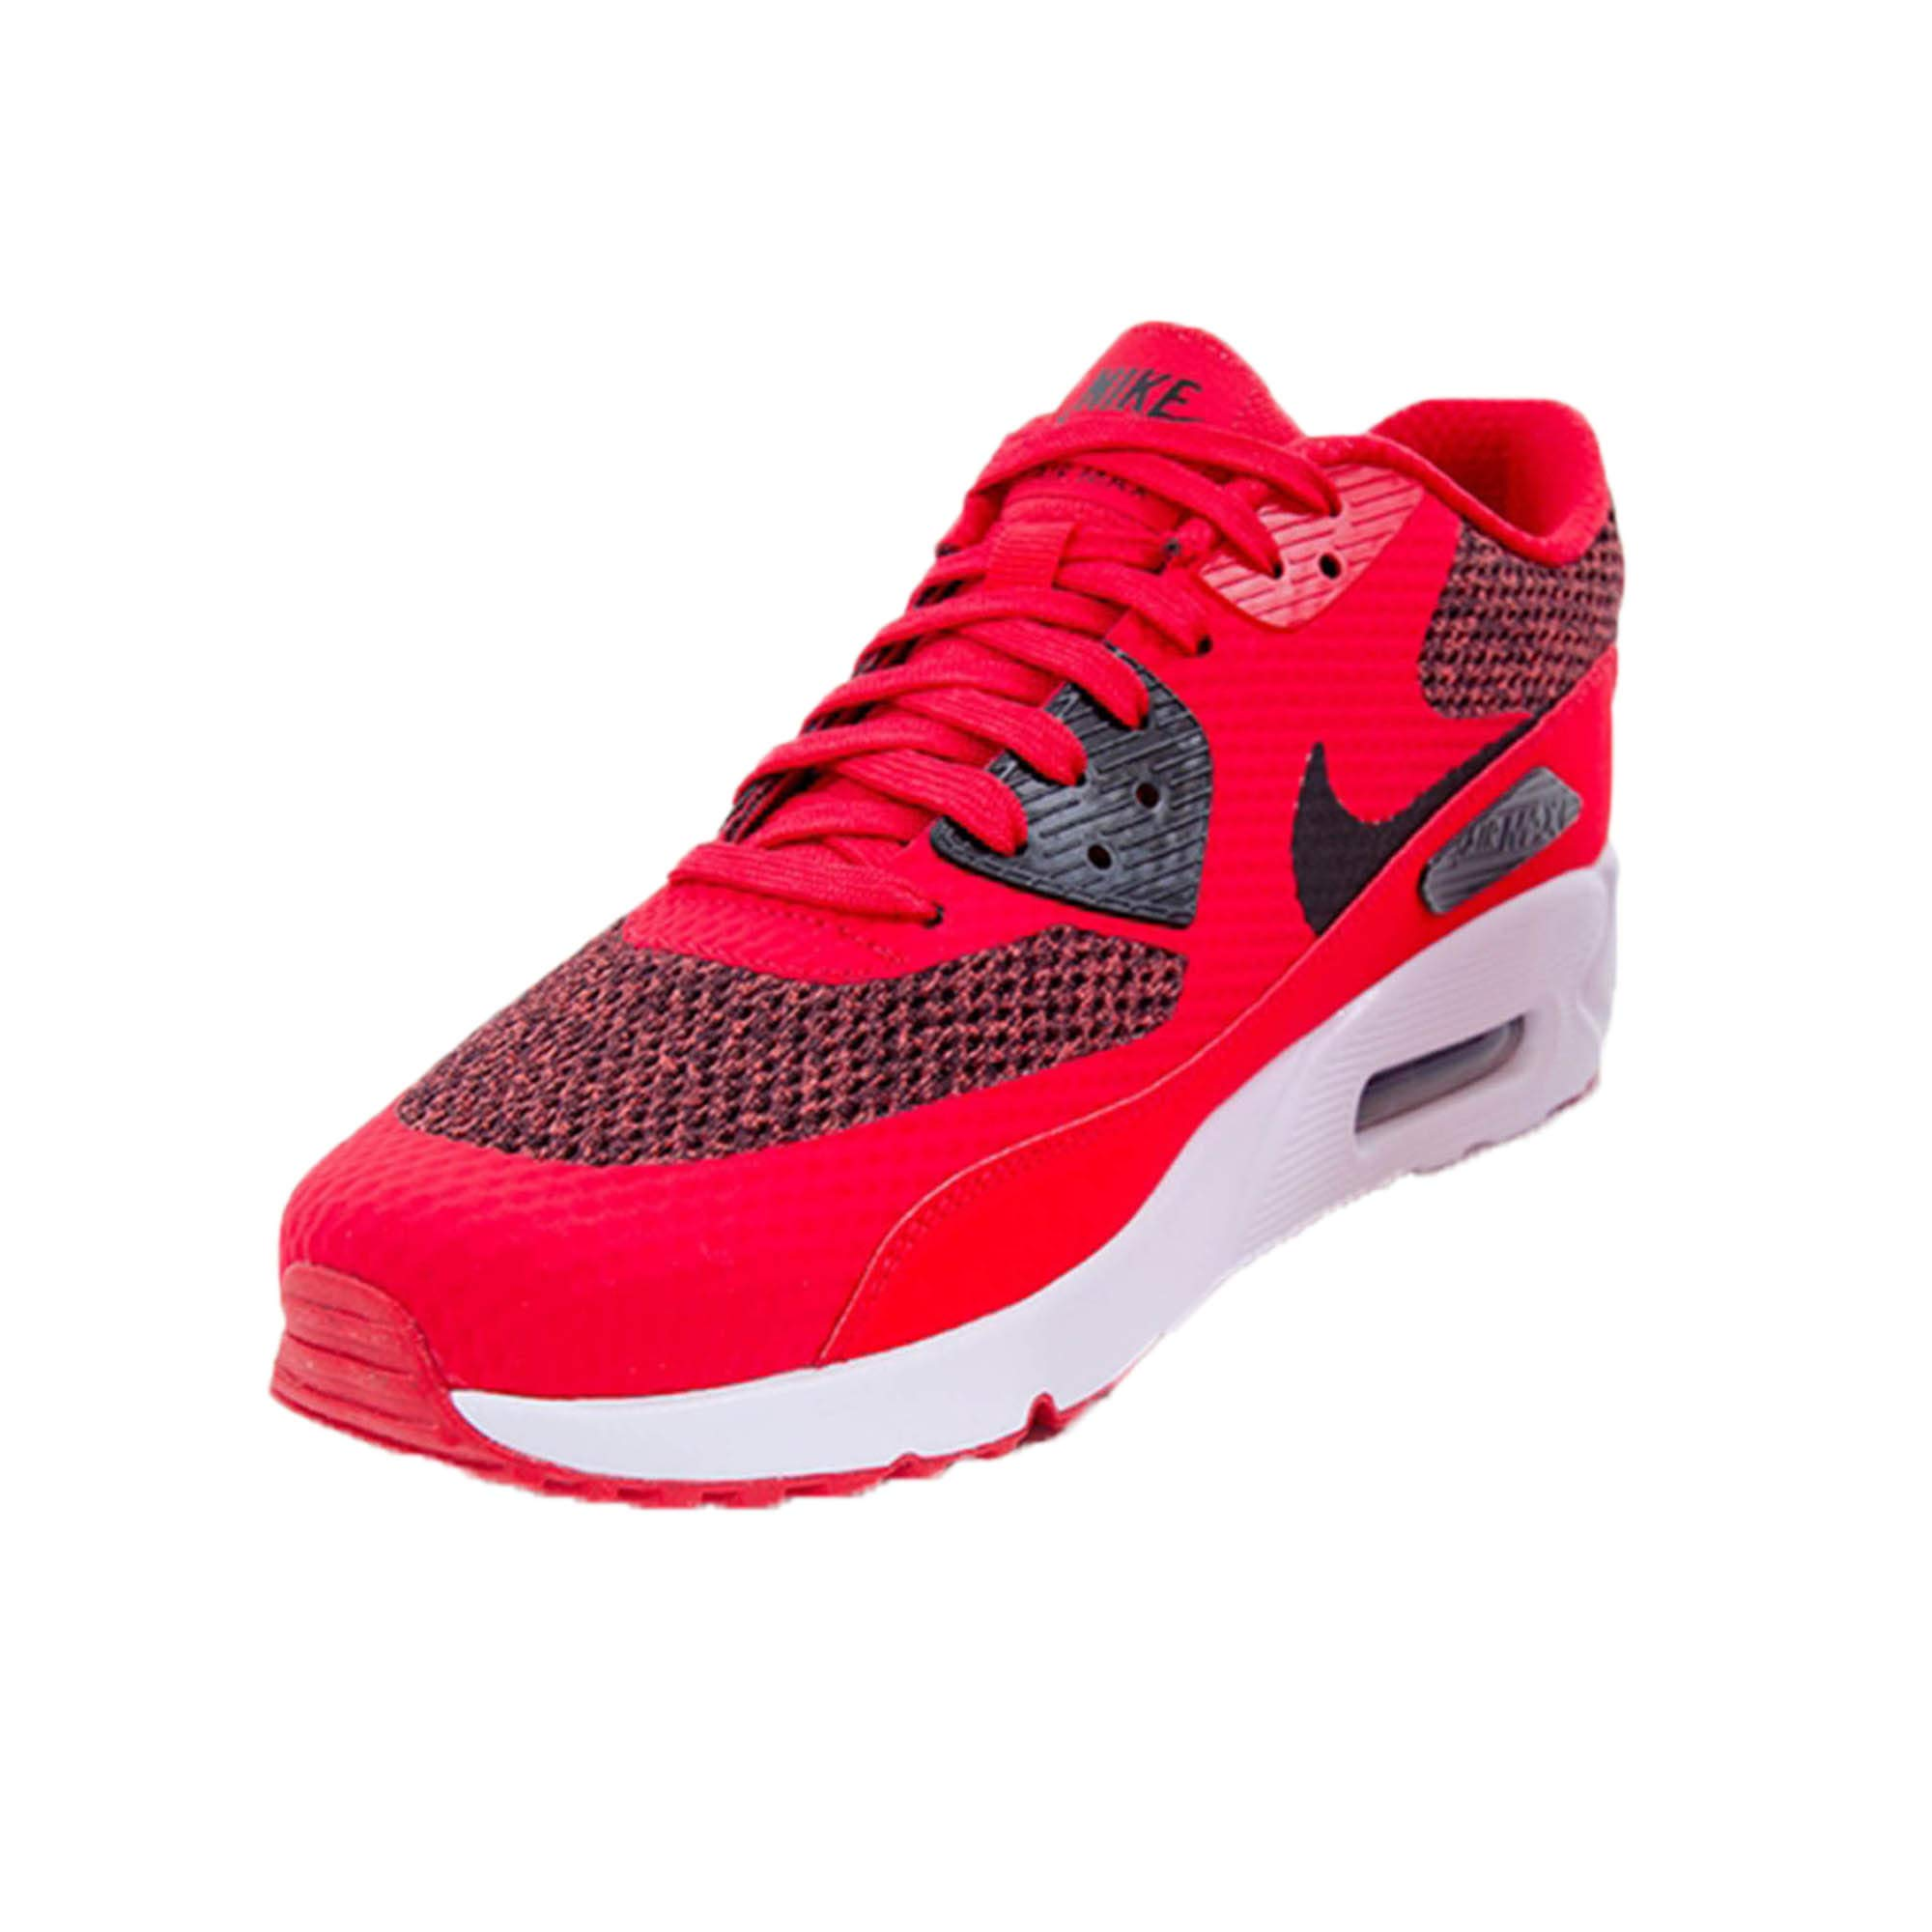 c2854c25d5 Galleon - Nike Air Max 90 Ultra 2.0 Essential Mens Style : 875695-604 Size  : 10.5 M US